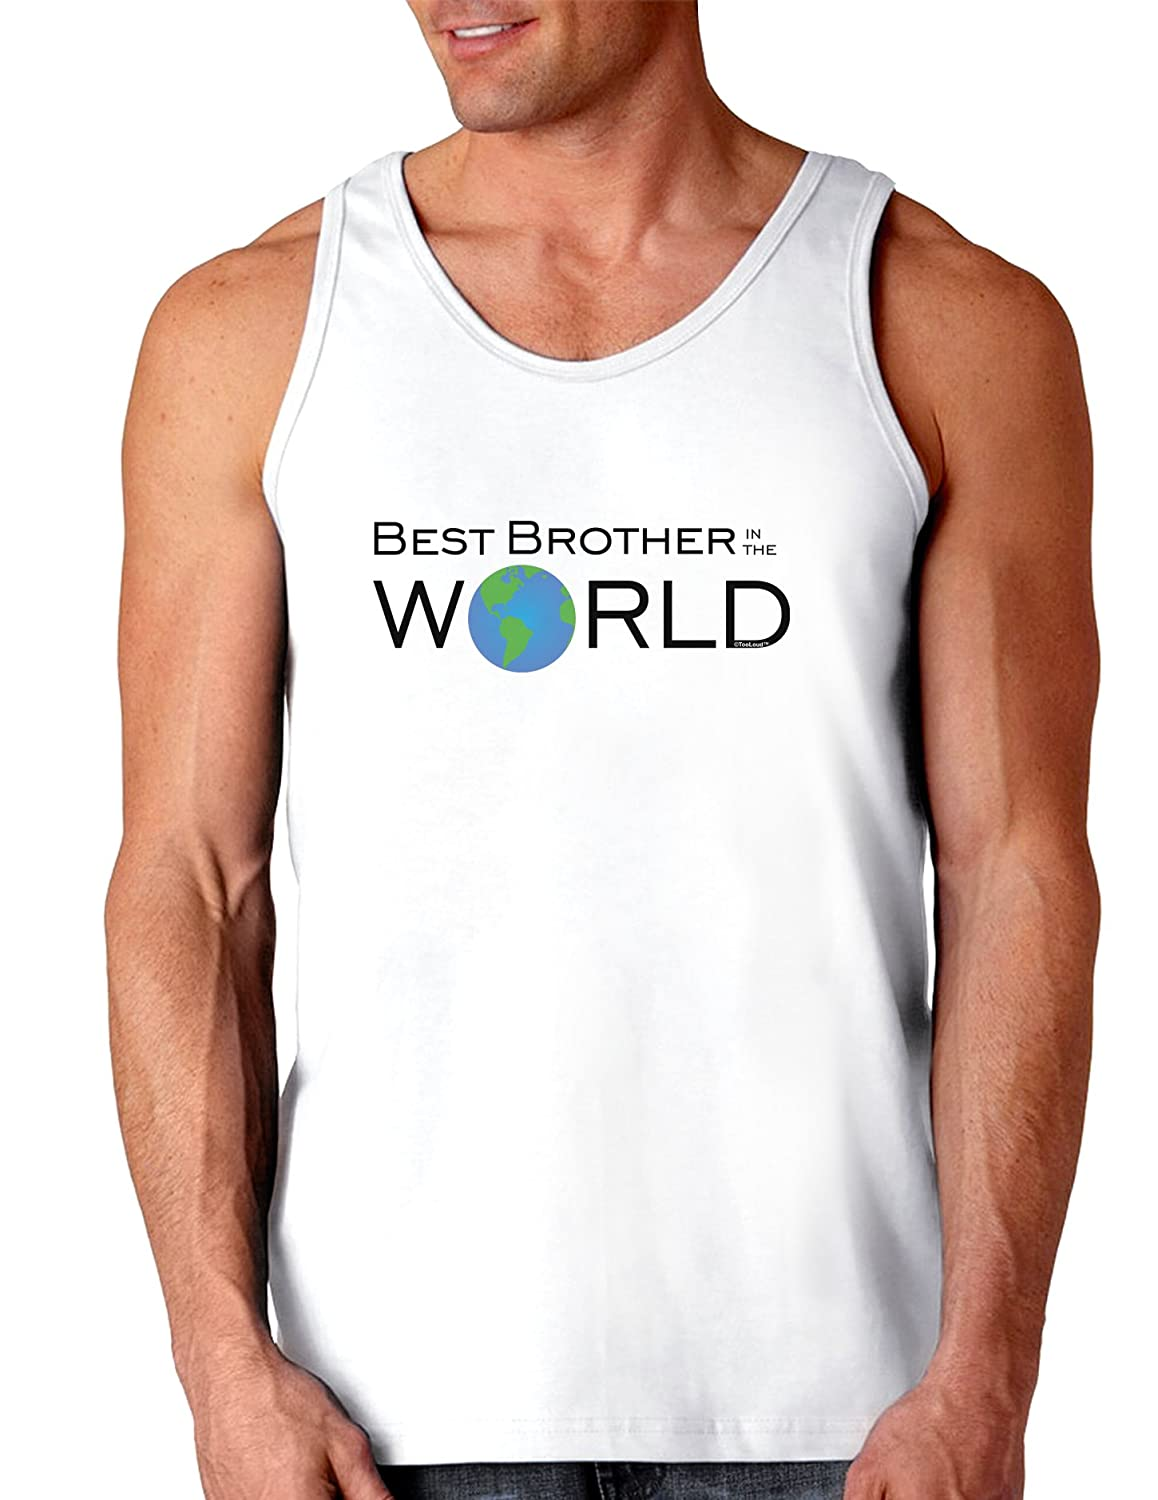 Best Brother in the World Loose Tank Top